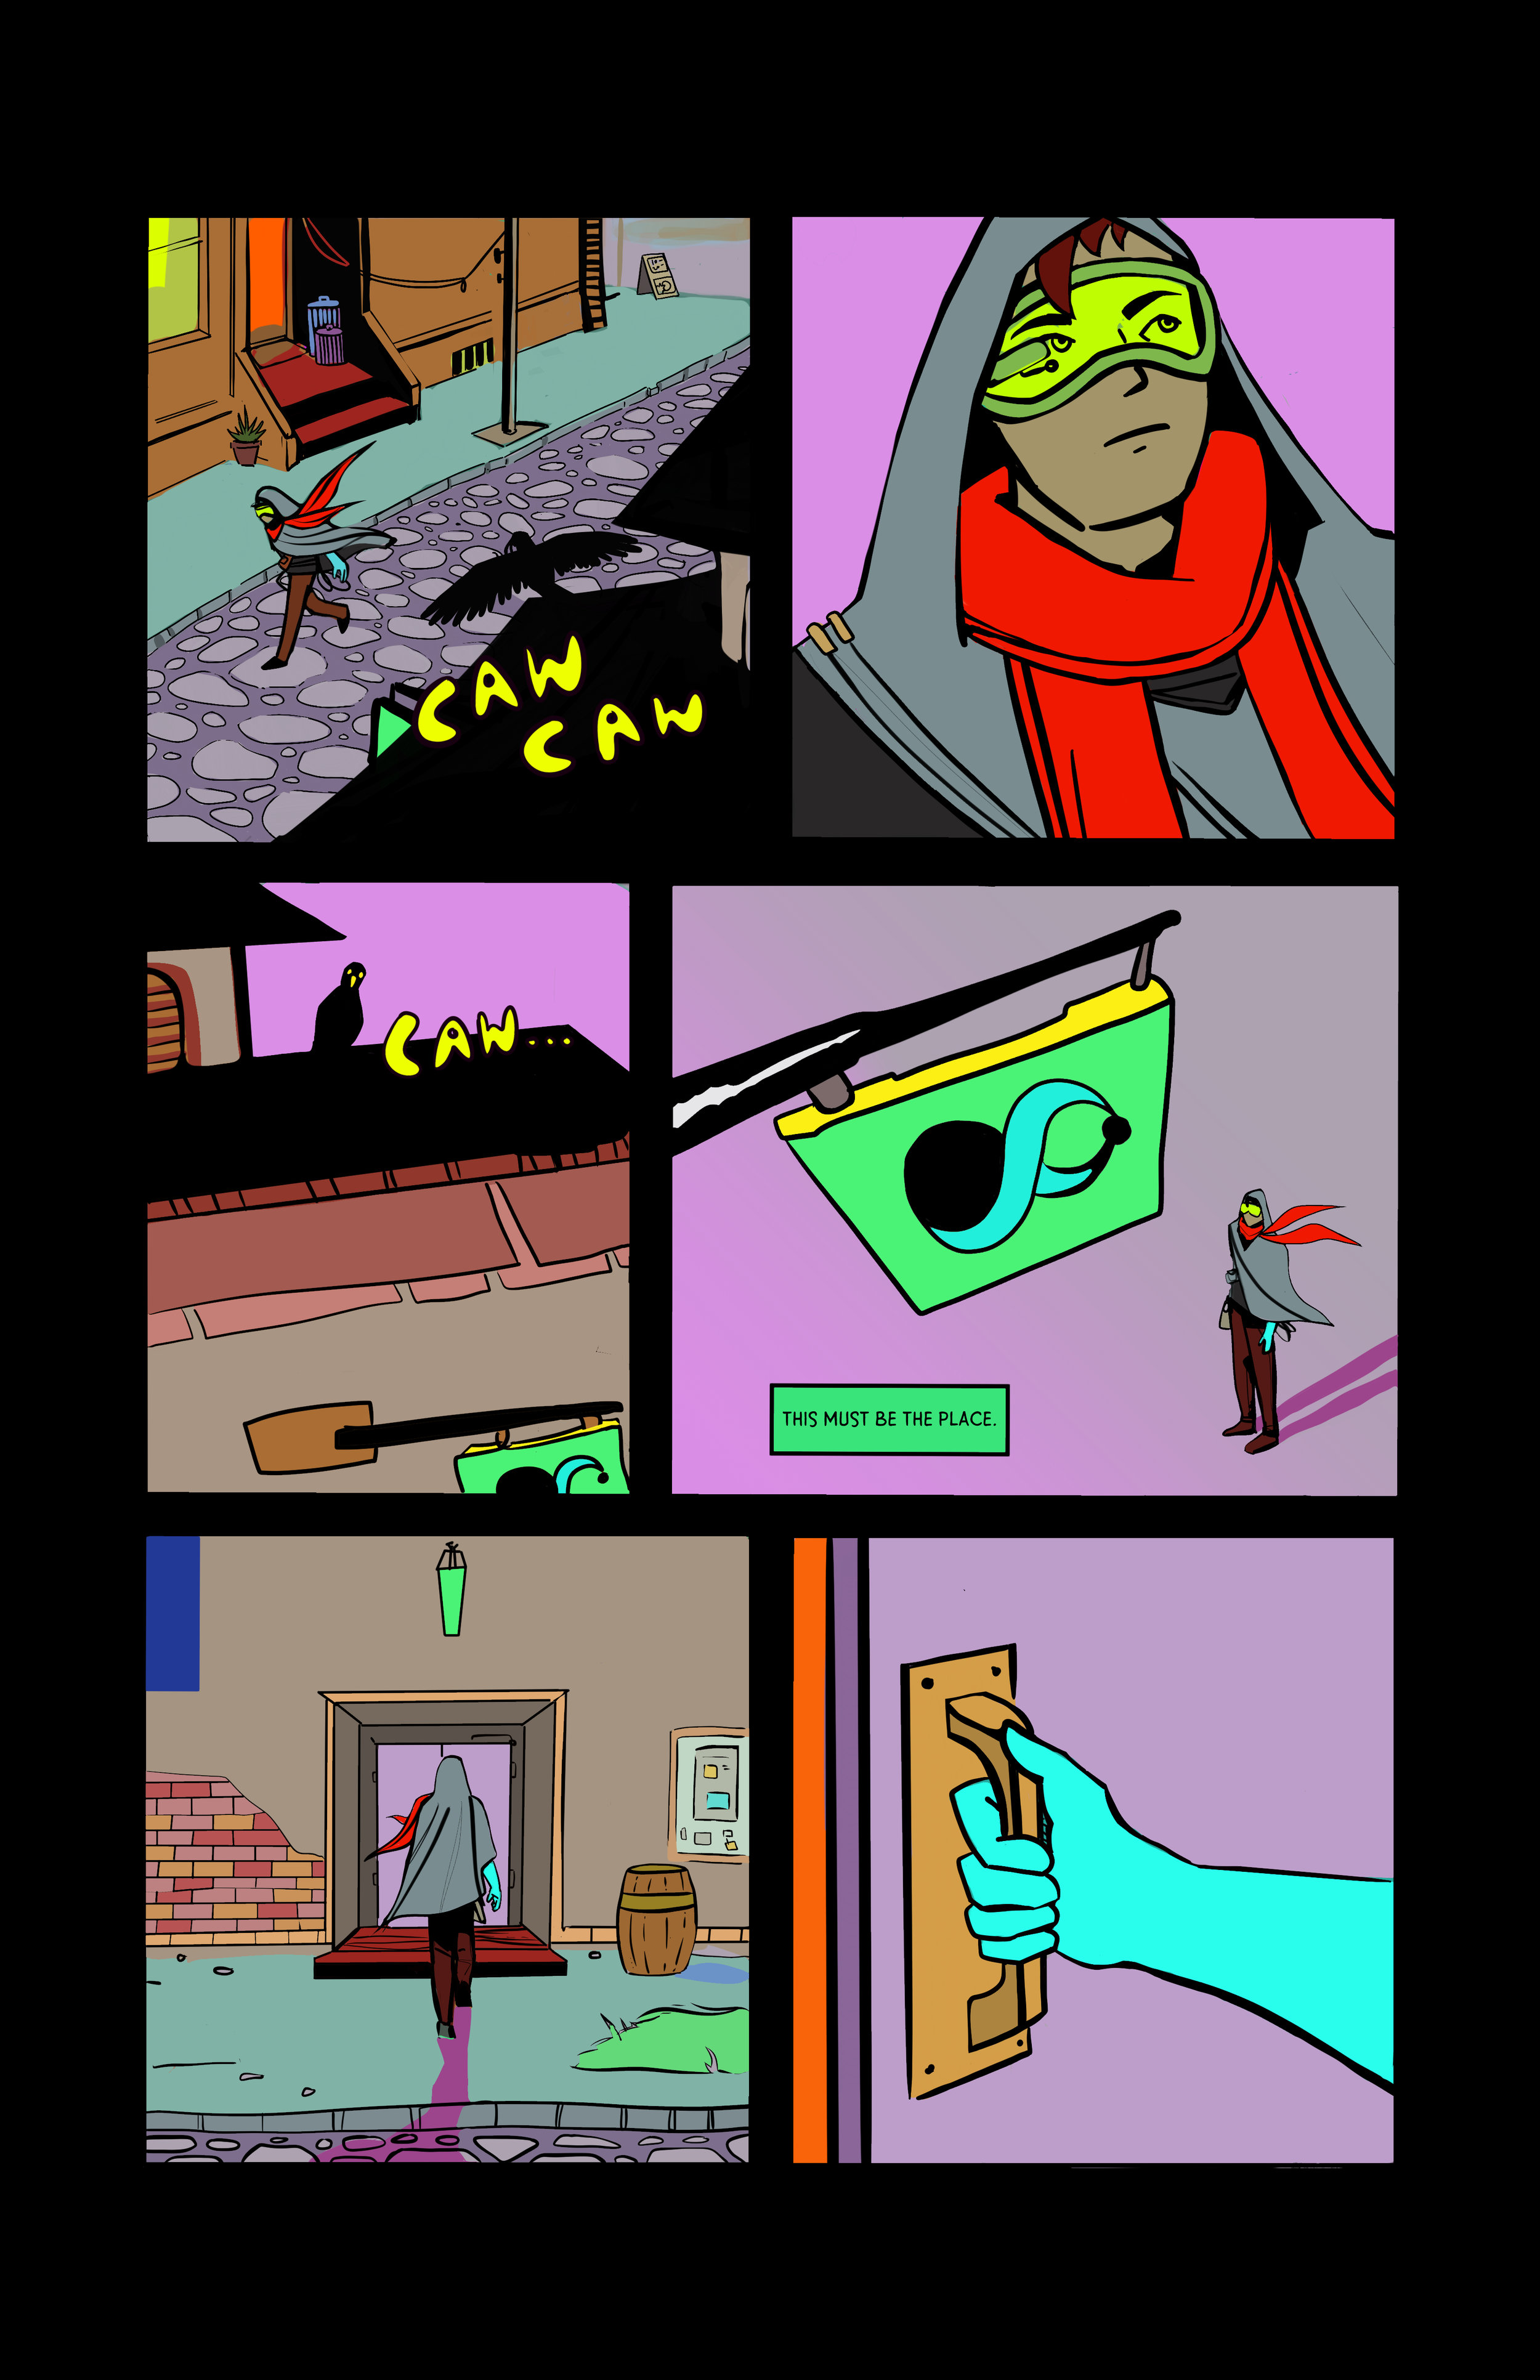 tilted_Sun_Page_6_comic_Becky_Jewell.jpg